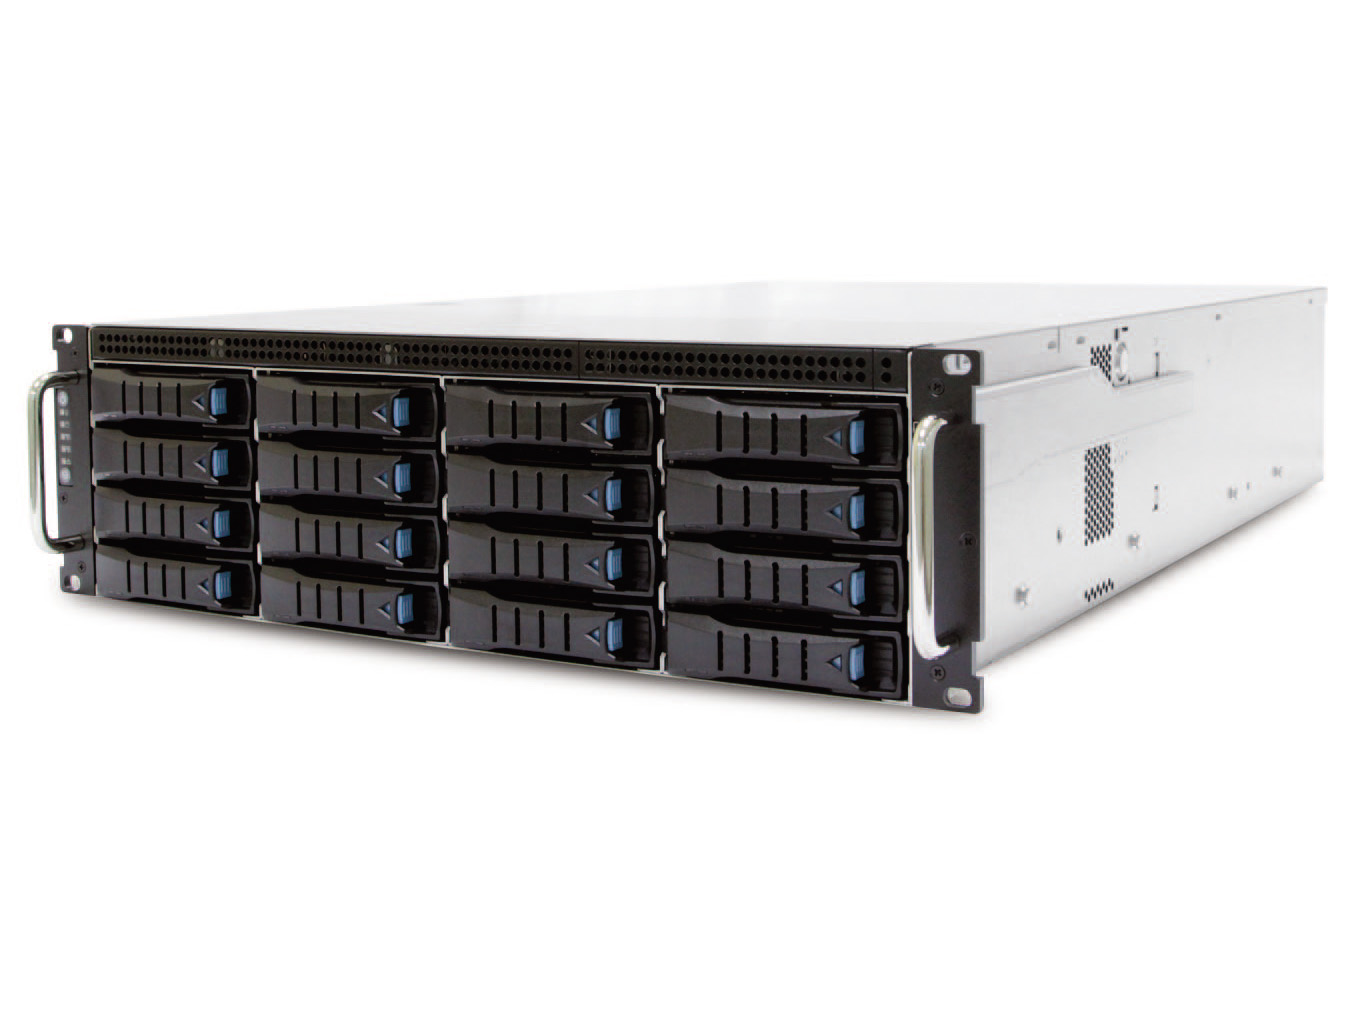 AIC RSC-3ET XE1-3ET00-01 3U 16-bay Storage Server Chassis